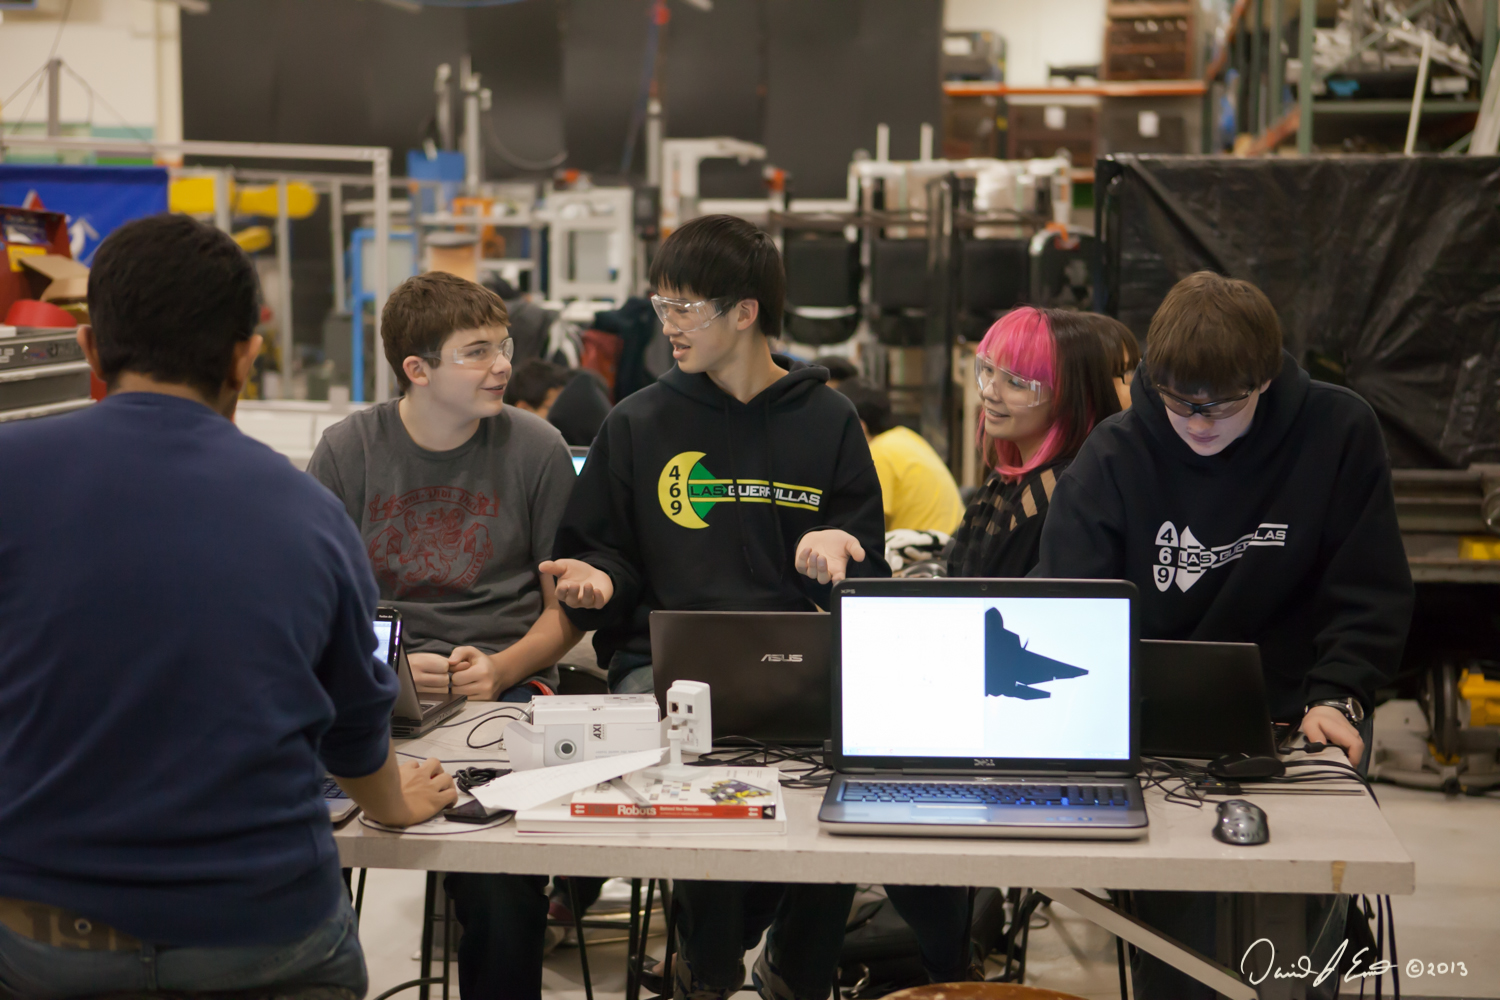 For the Love of Engineering: FIRST in Michigan Transforms Education